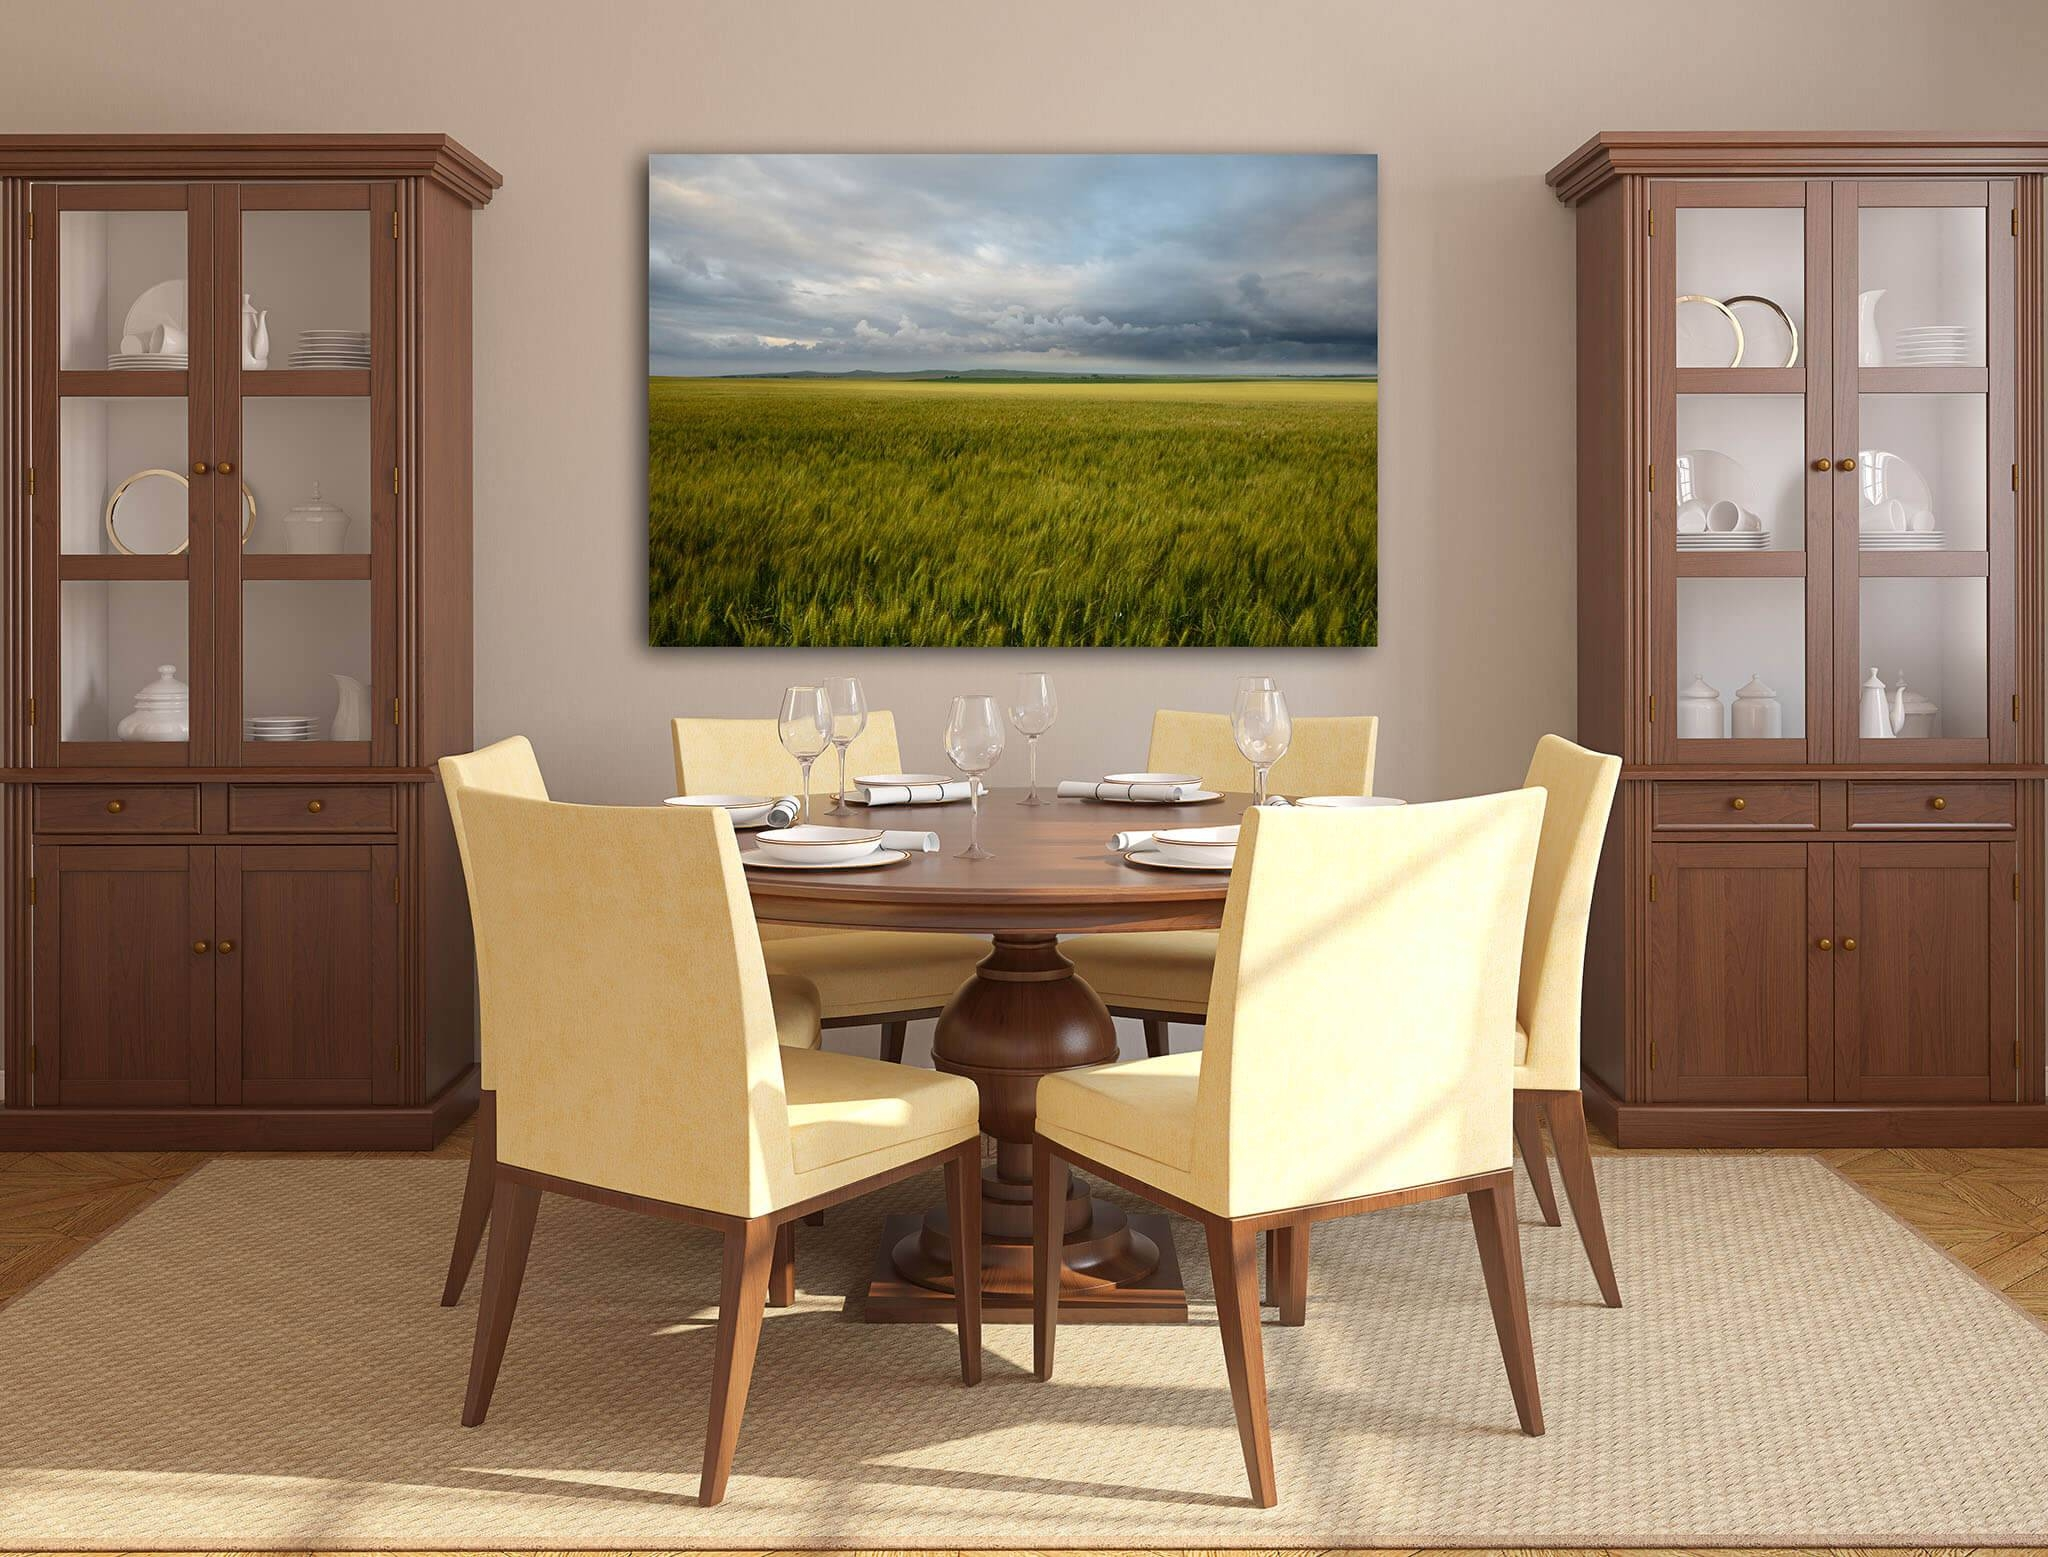 Kitchen & Dining Room Wall Art Ideas – Franklin Arts Pertaining To Most Popular Kitchen And Dining Wall Art (View 17 of 25)